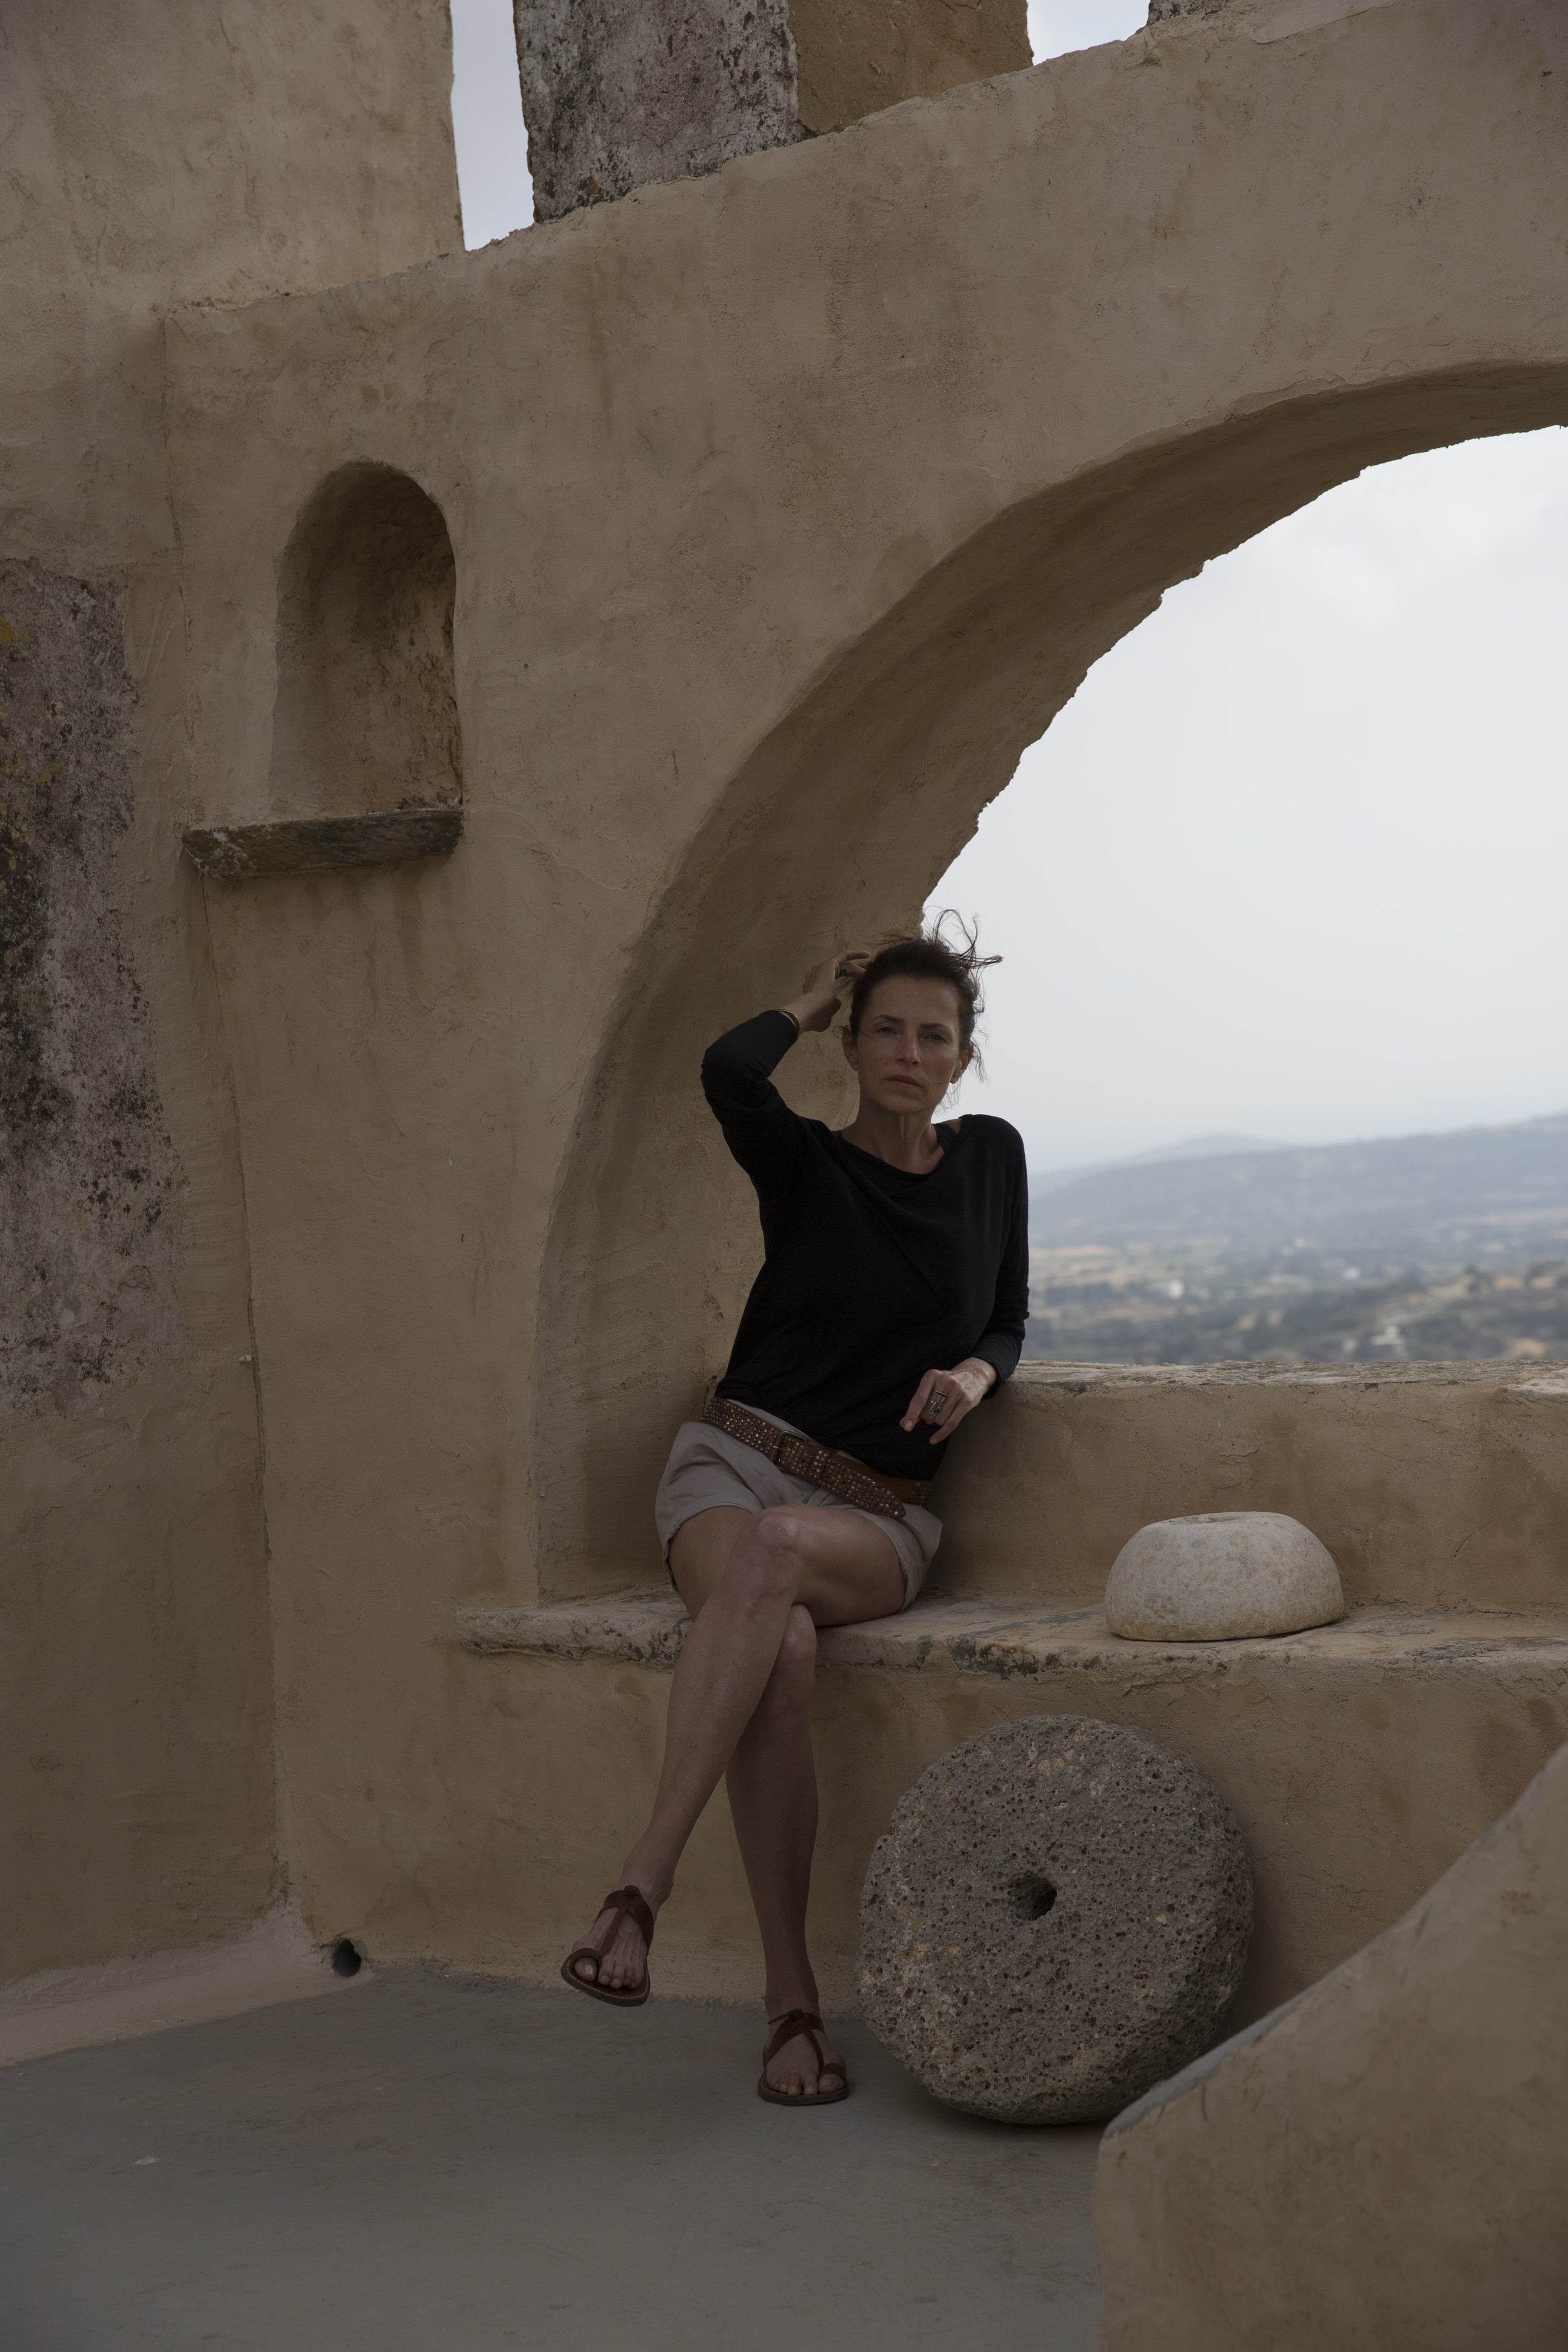 - Around and About 2018 press releaseAround and About 2018 participantsNaxos and the small cycladesArtist profile (in the works, stay tuned!)Patricia's travel tips for Greece (coming soon!)